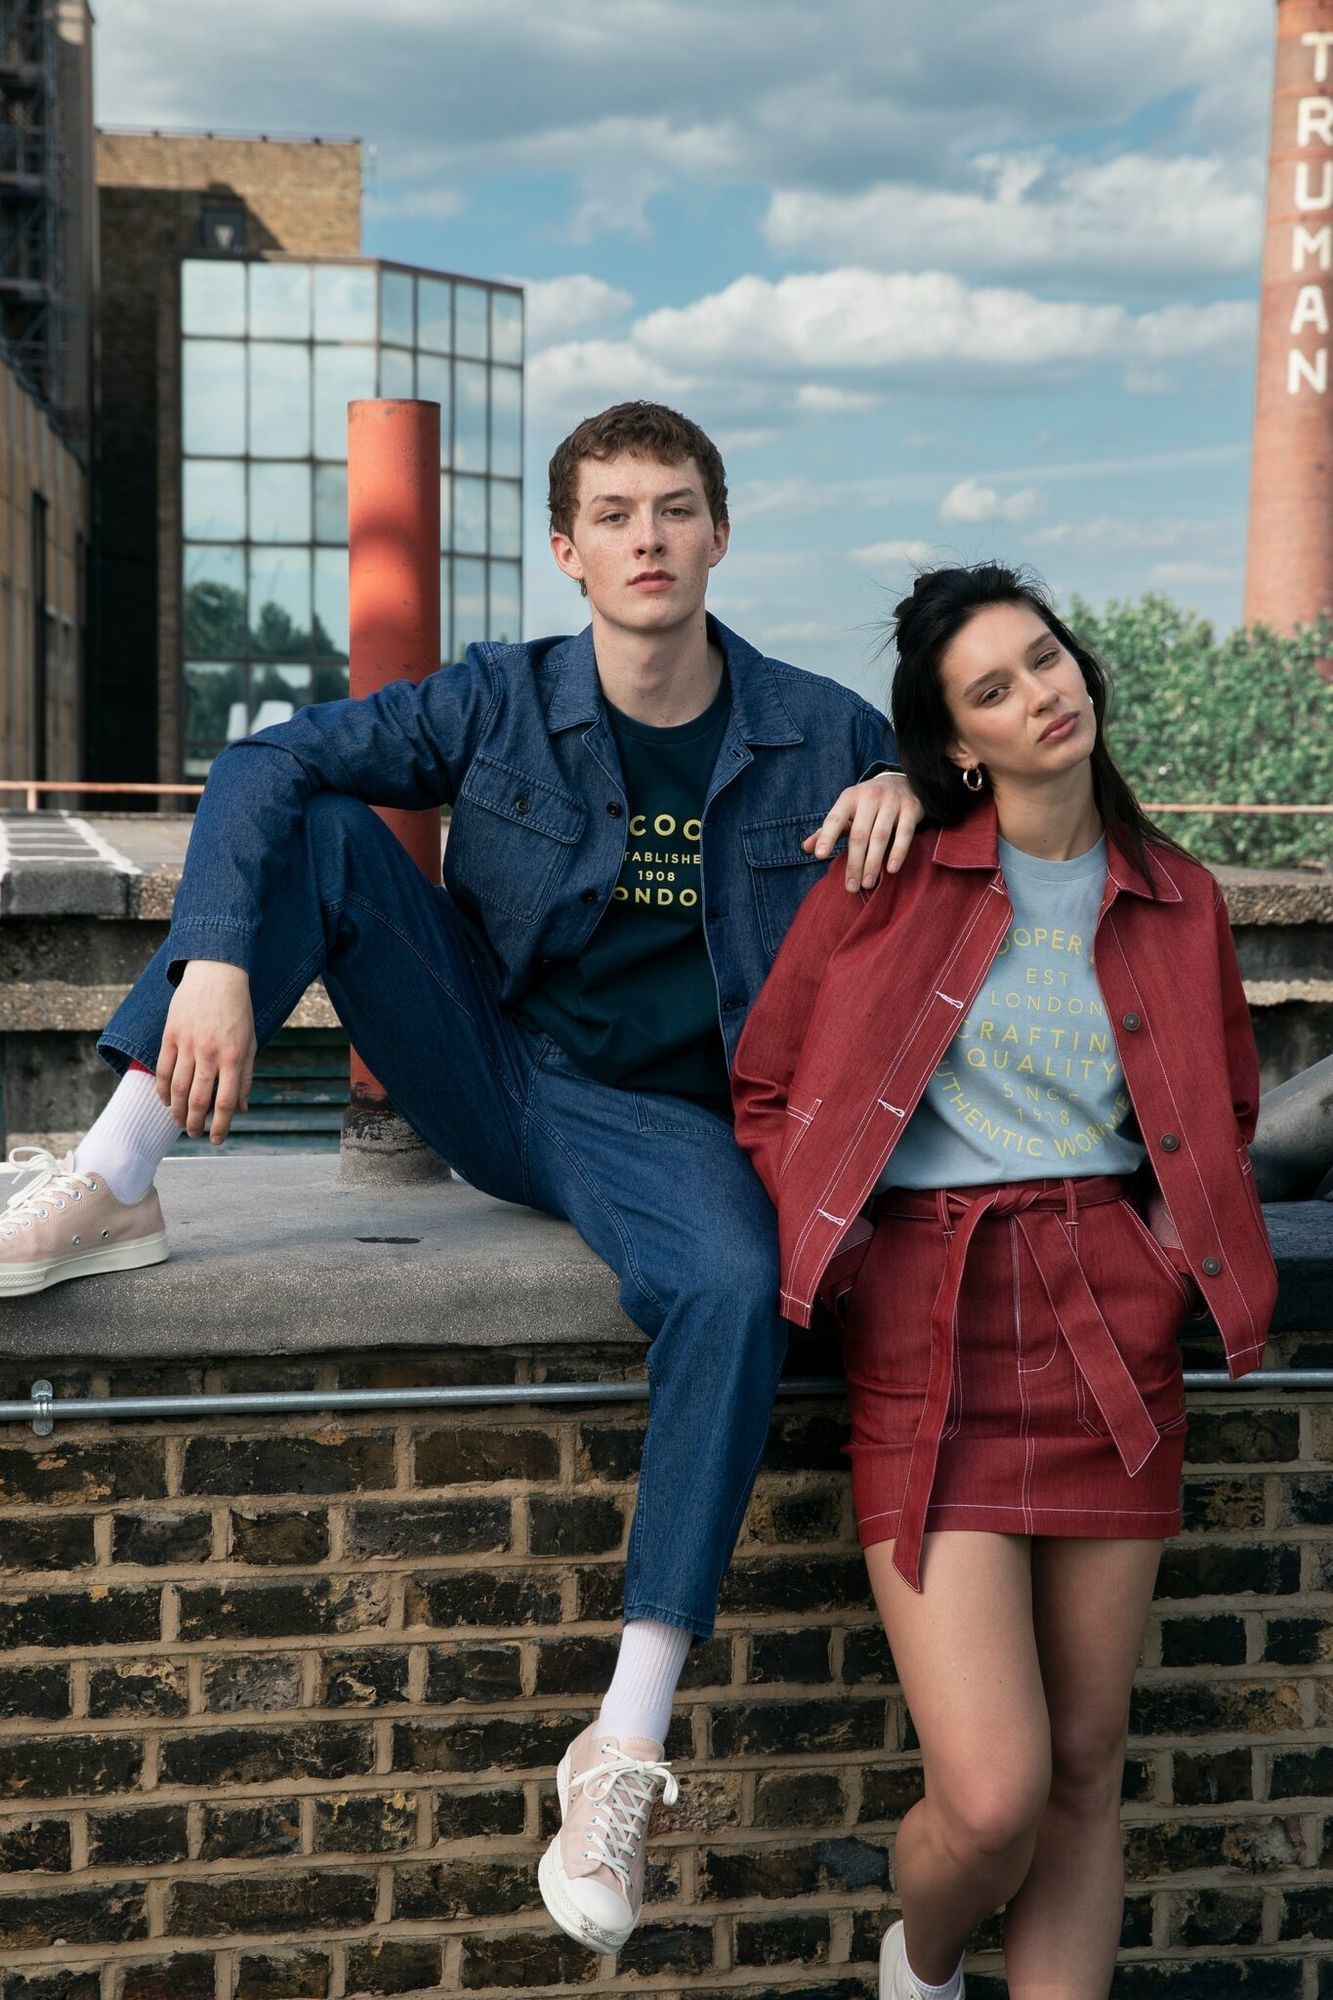 'True London Blues' - Lee Cooper's AW19 campaign by Bexy Cameron c/o The Graft